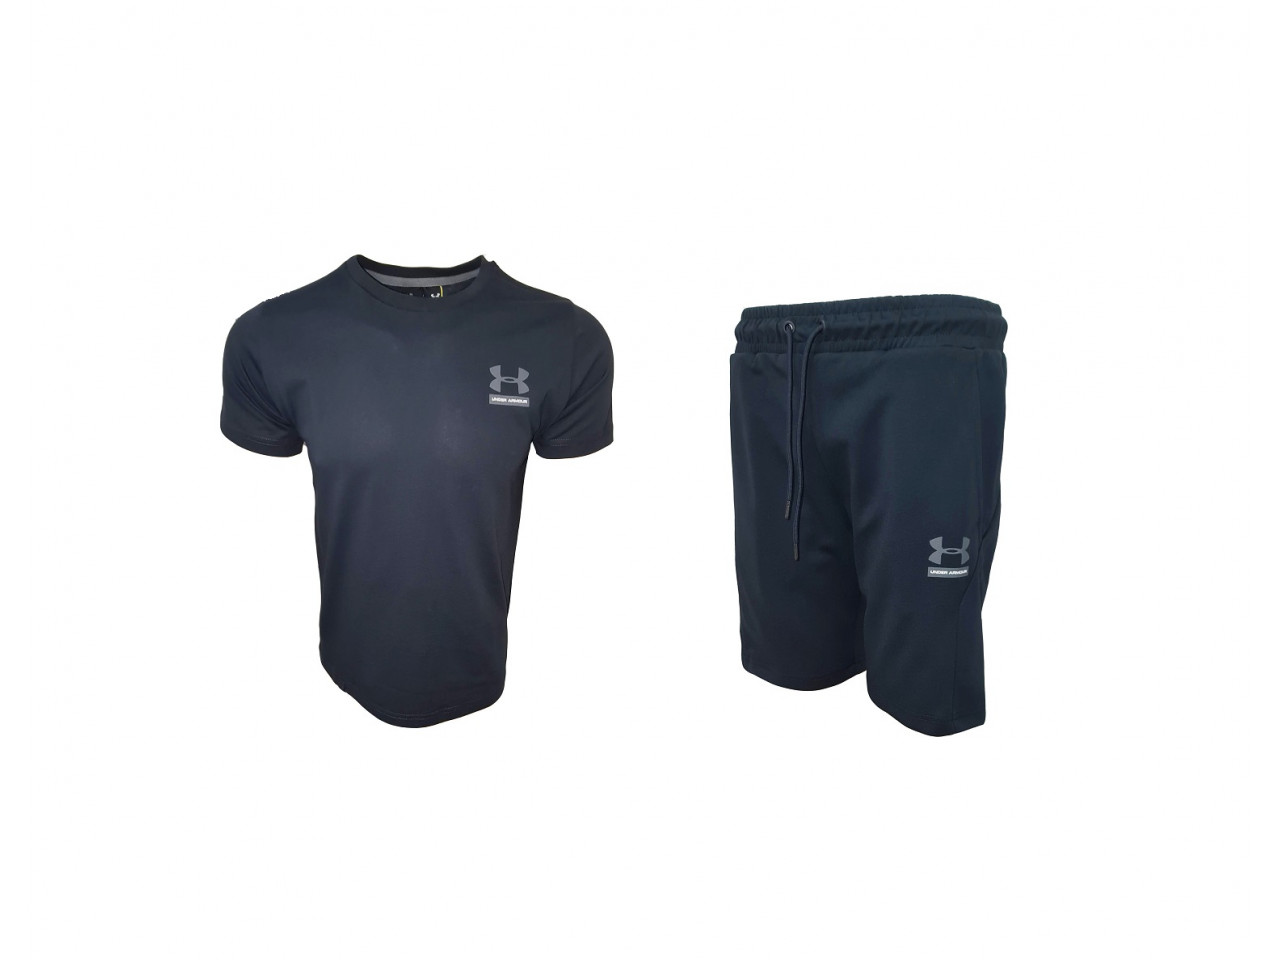 Under Armour 60 Shorts+ T-shirt Dark Blue